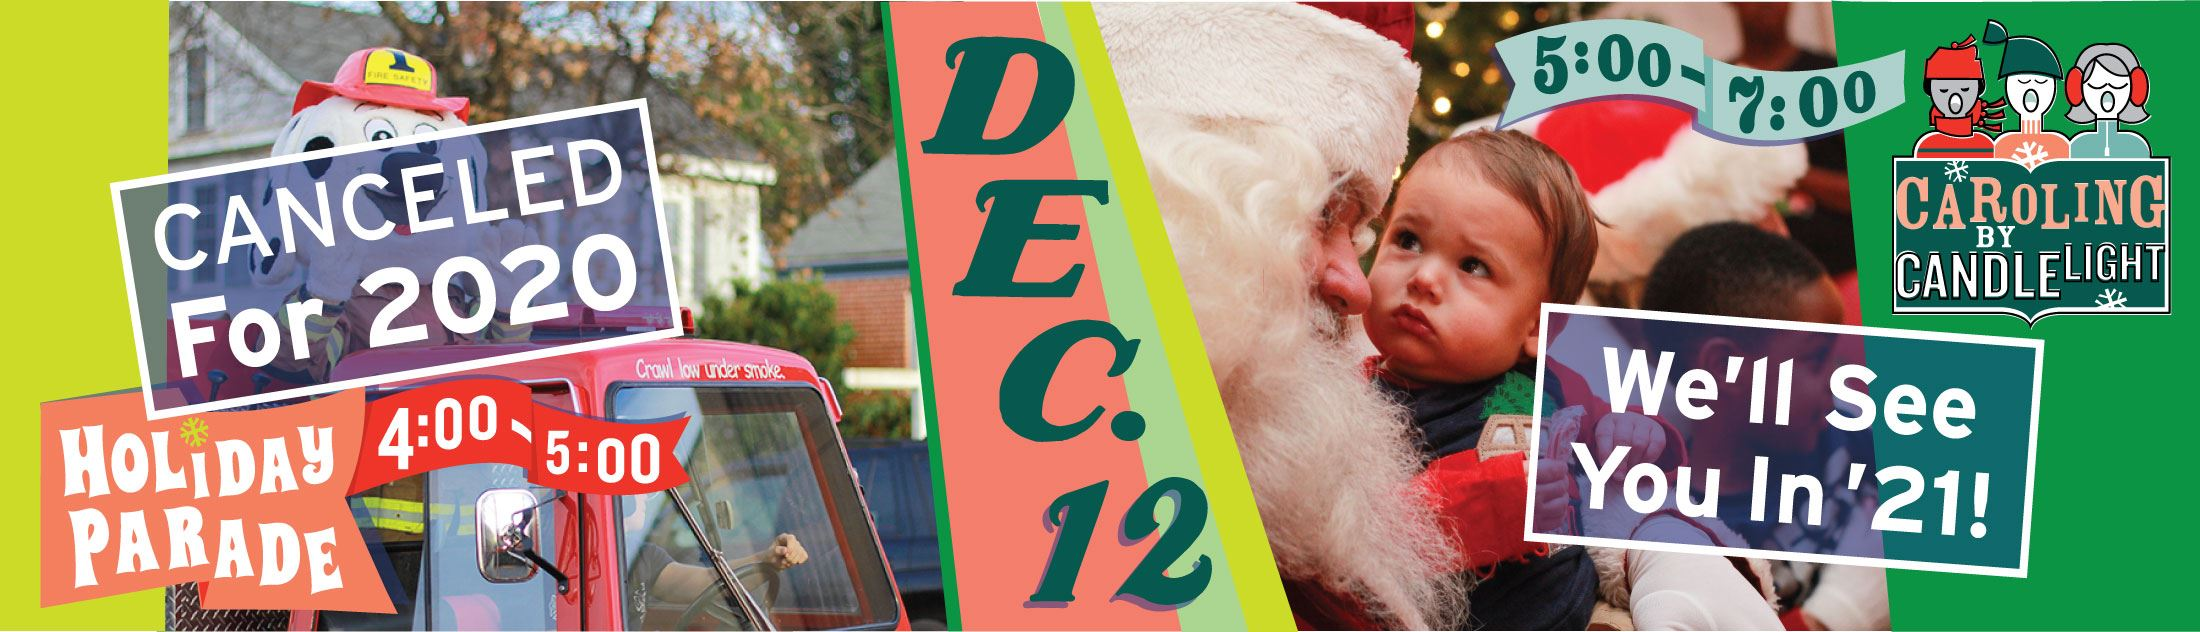 Holiday Parade and Caroling by Candlelight have been canceled.